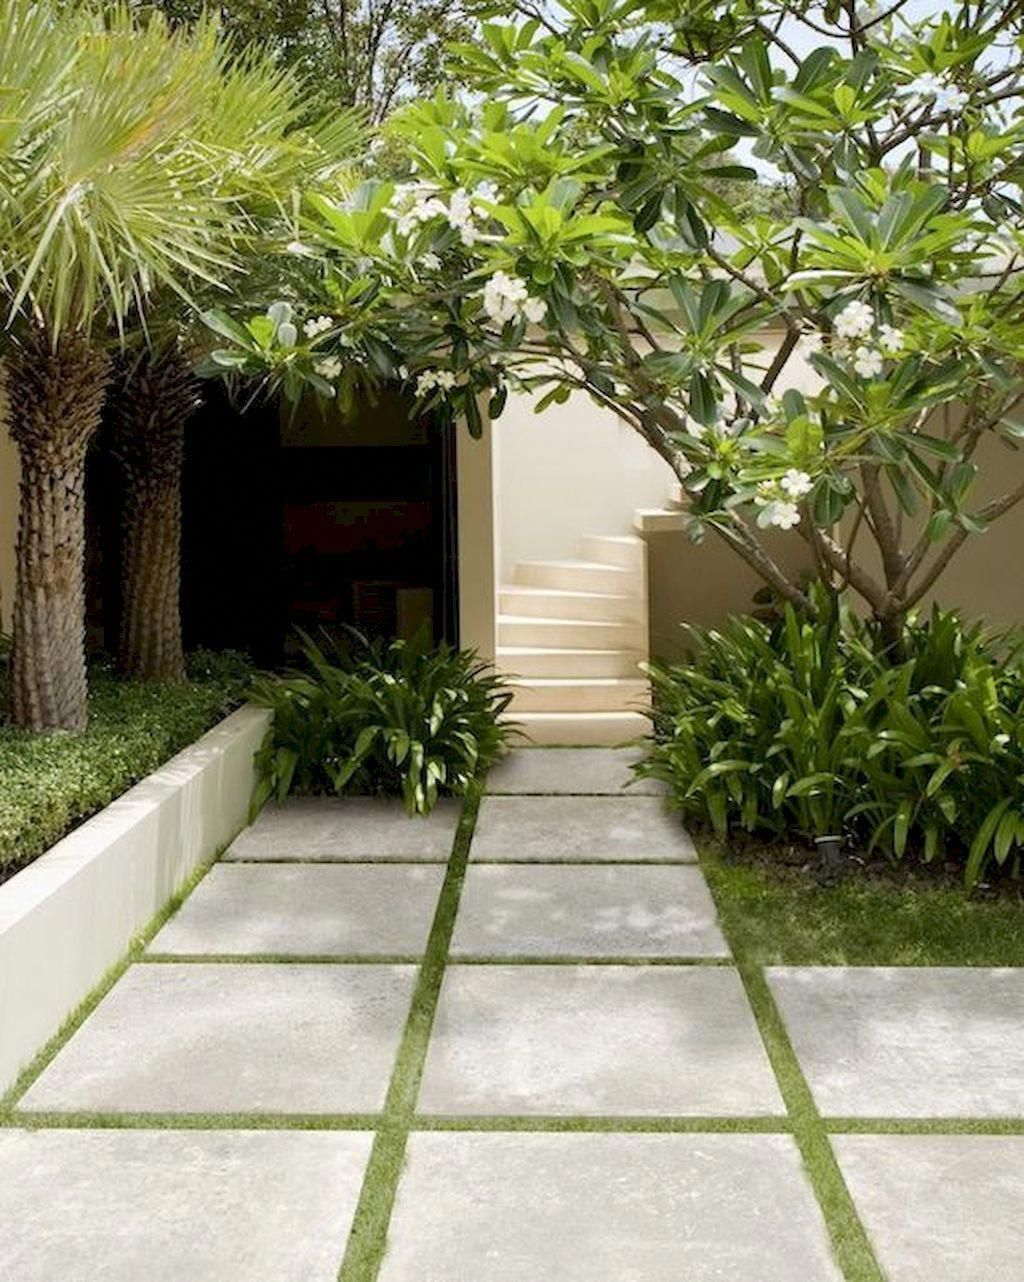 Landscaping A Must Look Image Number 6295140567 For A Jaw Dropping Garden Design Diylandscapingb Modern Landscaping Landscape Design Modern Landscape Design Backyard modern landscaping ideas